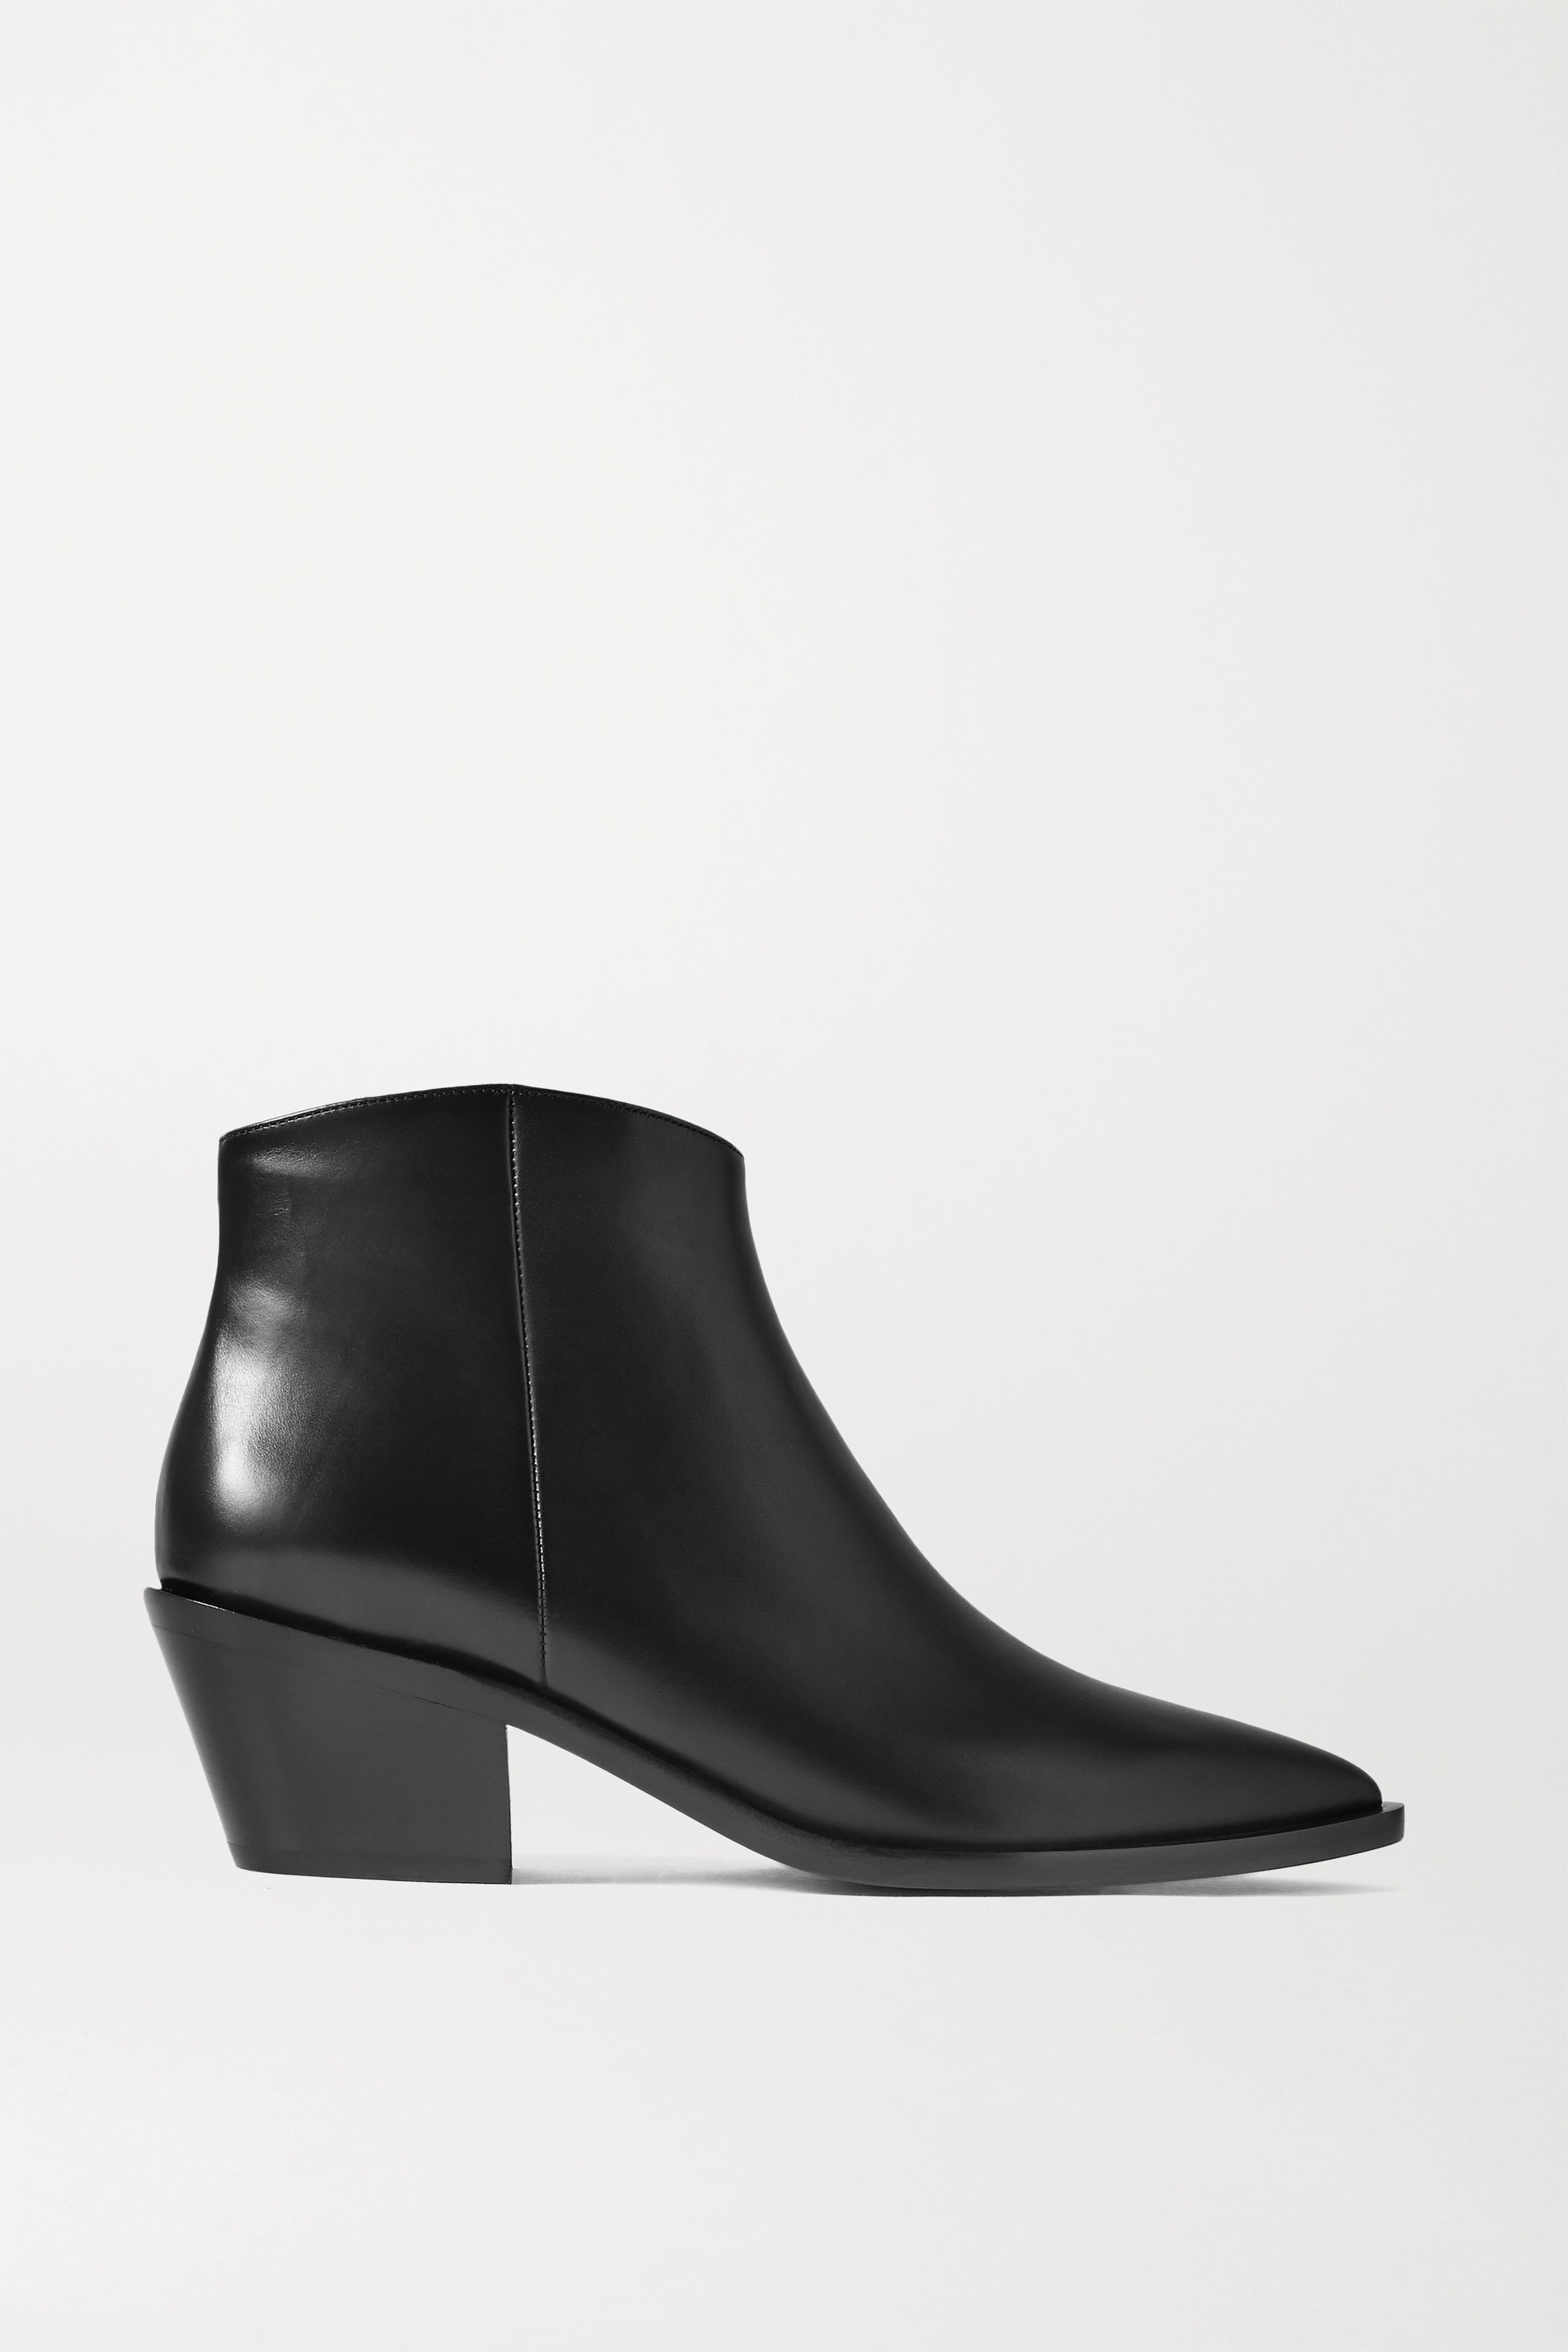 Gianvito Rossi 45 leather ankle boots